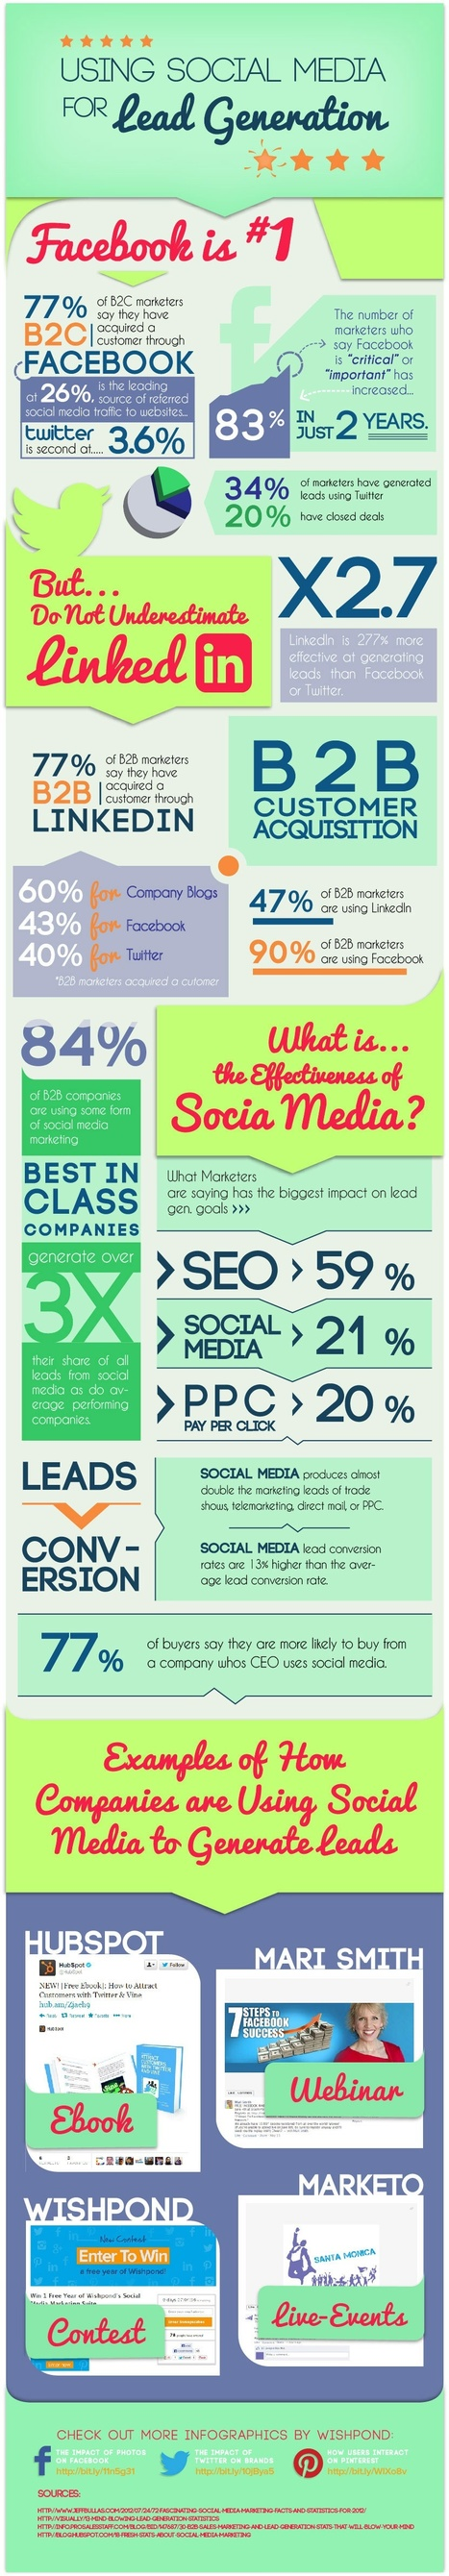 How to Use Social Media to Find Customers #Infographic | Bodhi Mkt Social Media Marketing | Scoop.it